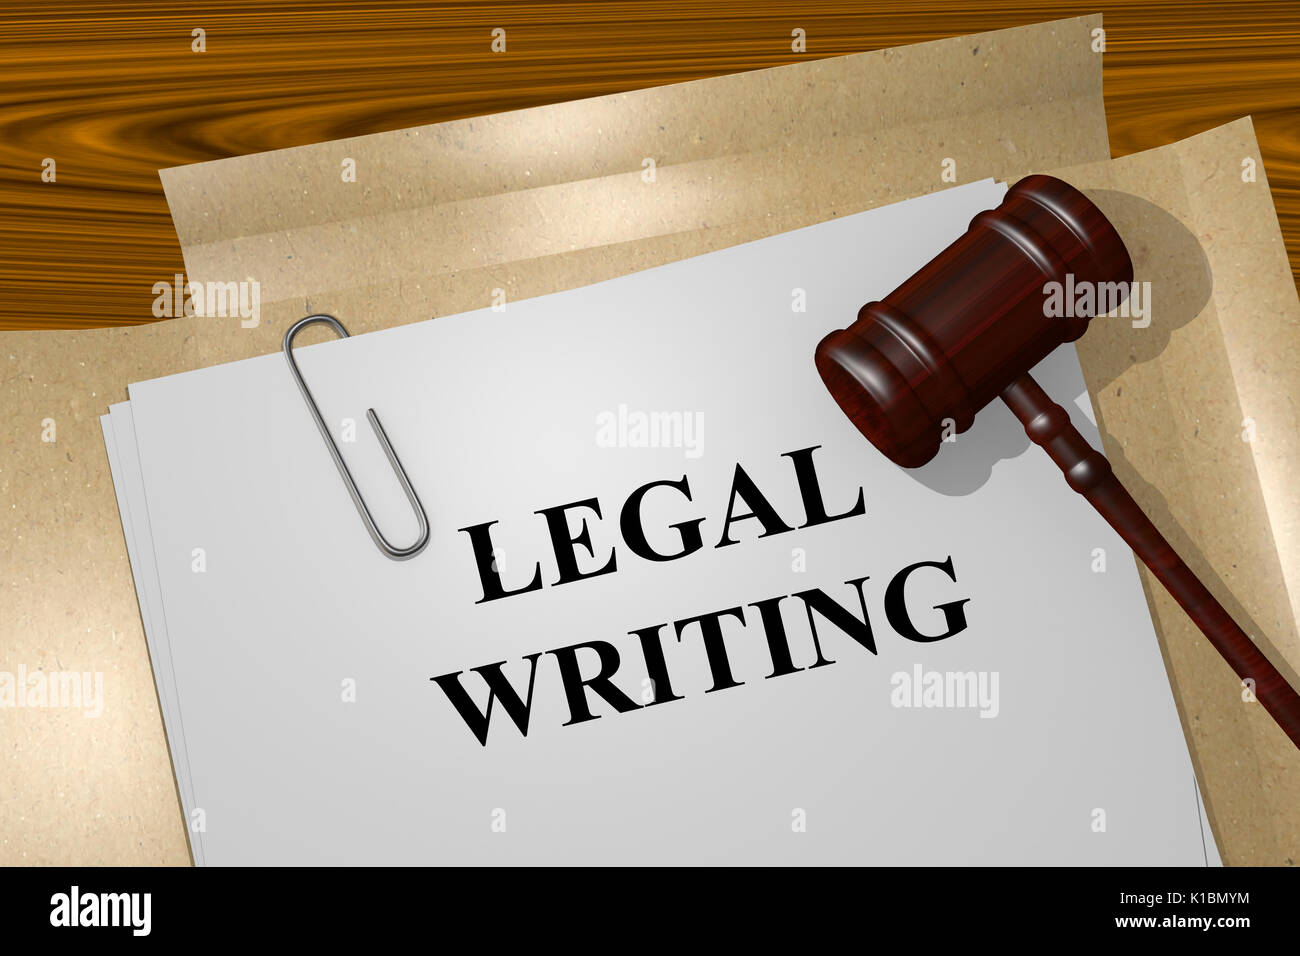 Legal writing there should be no homework assignments